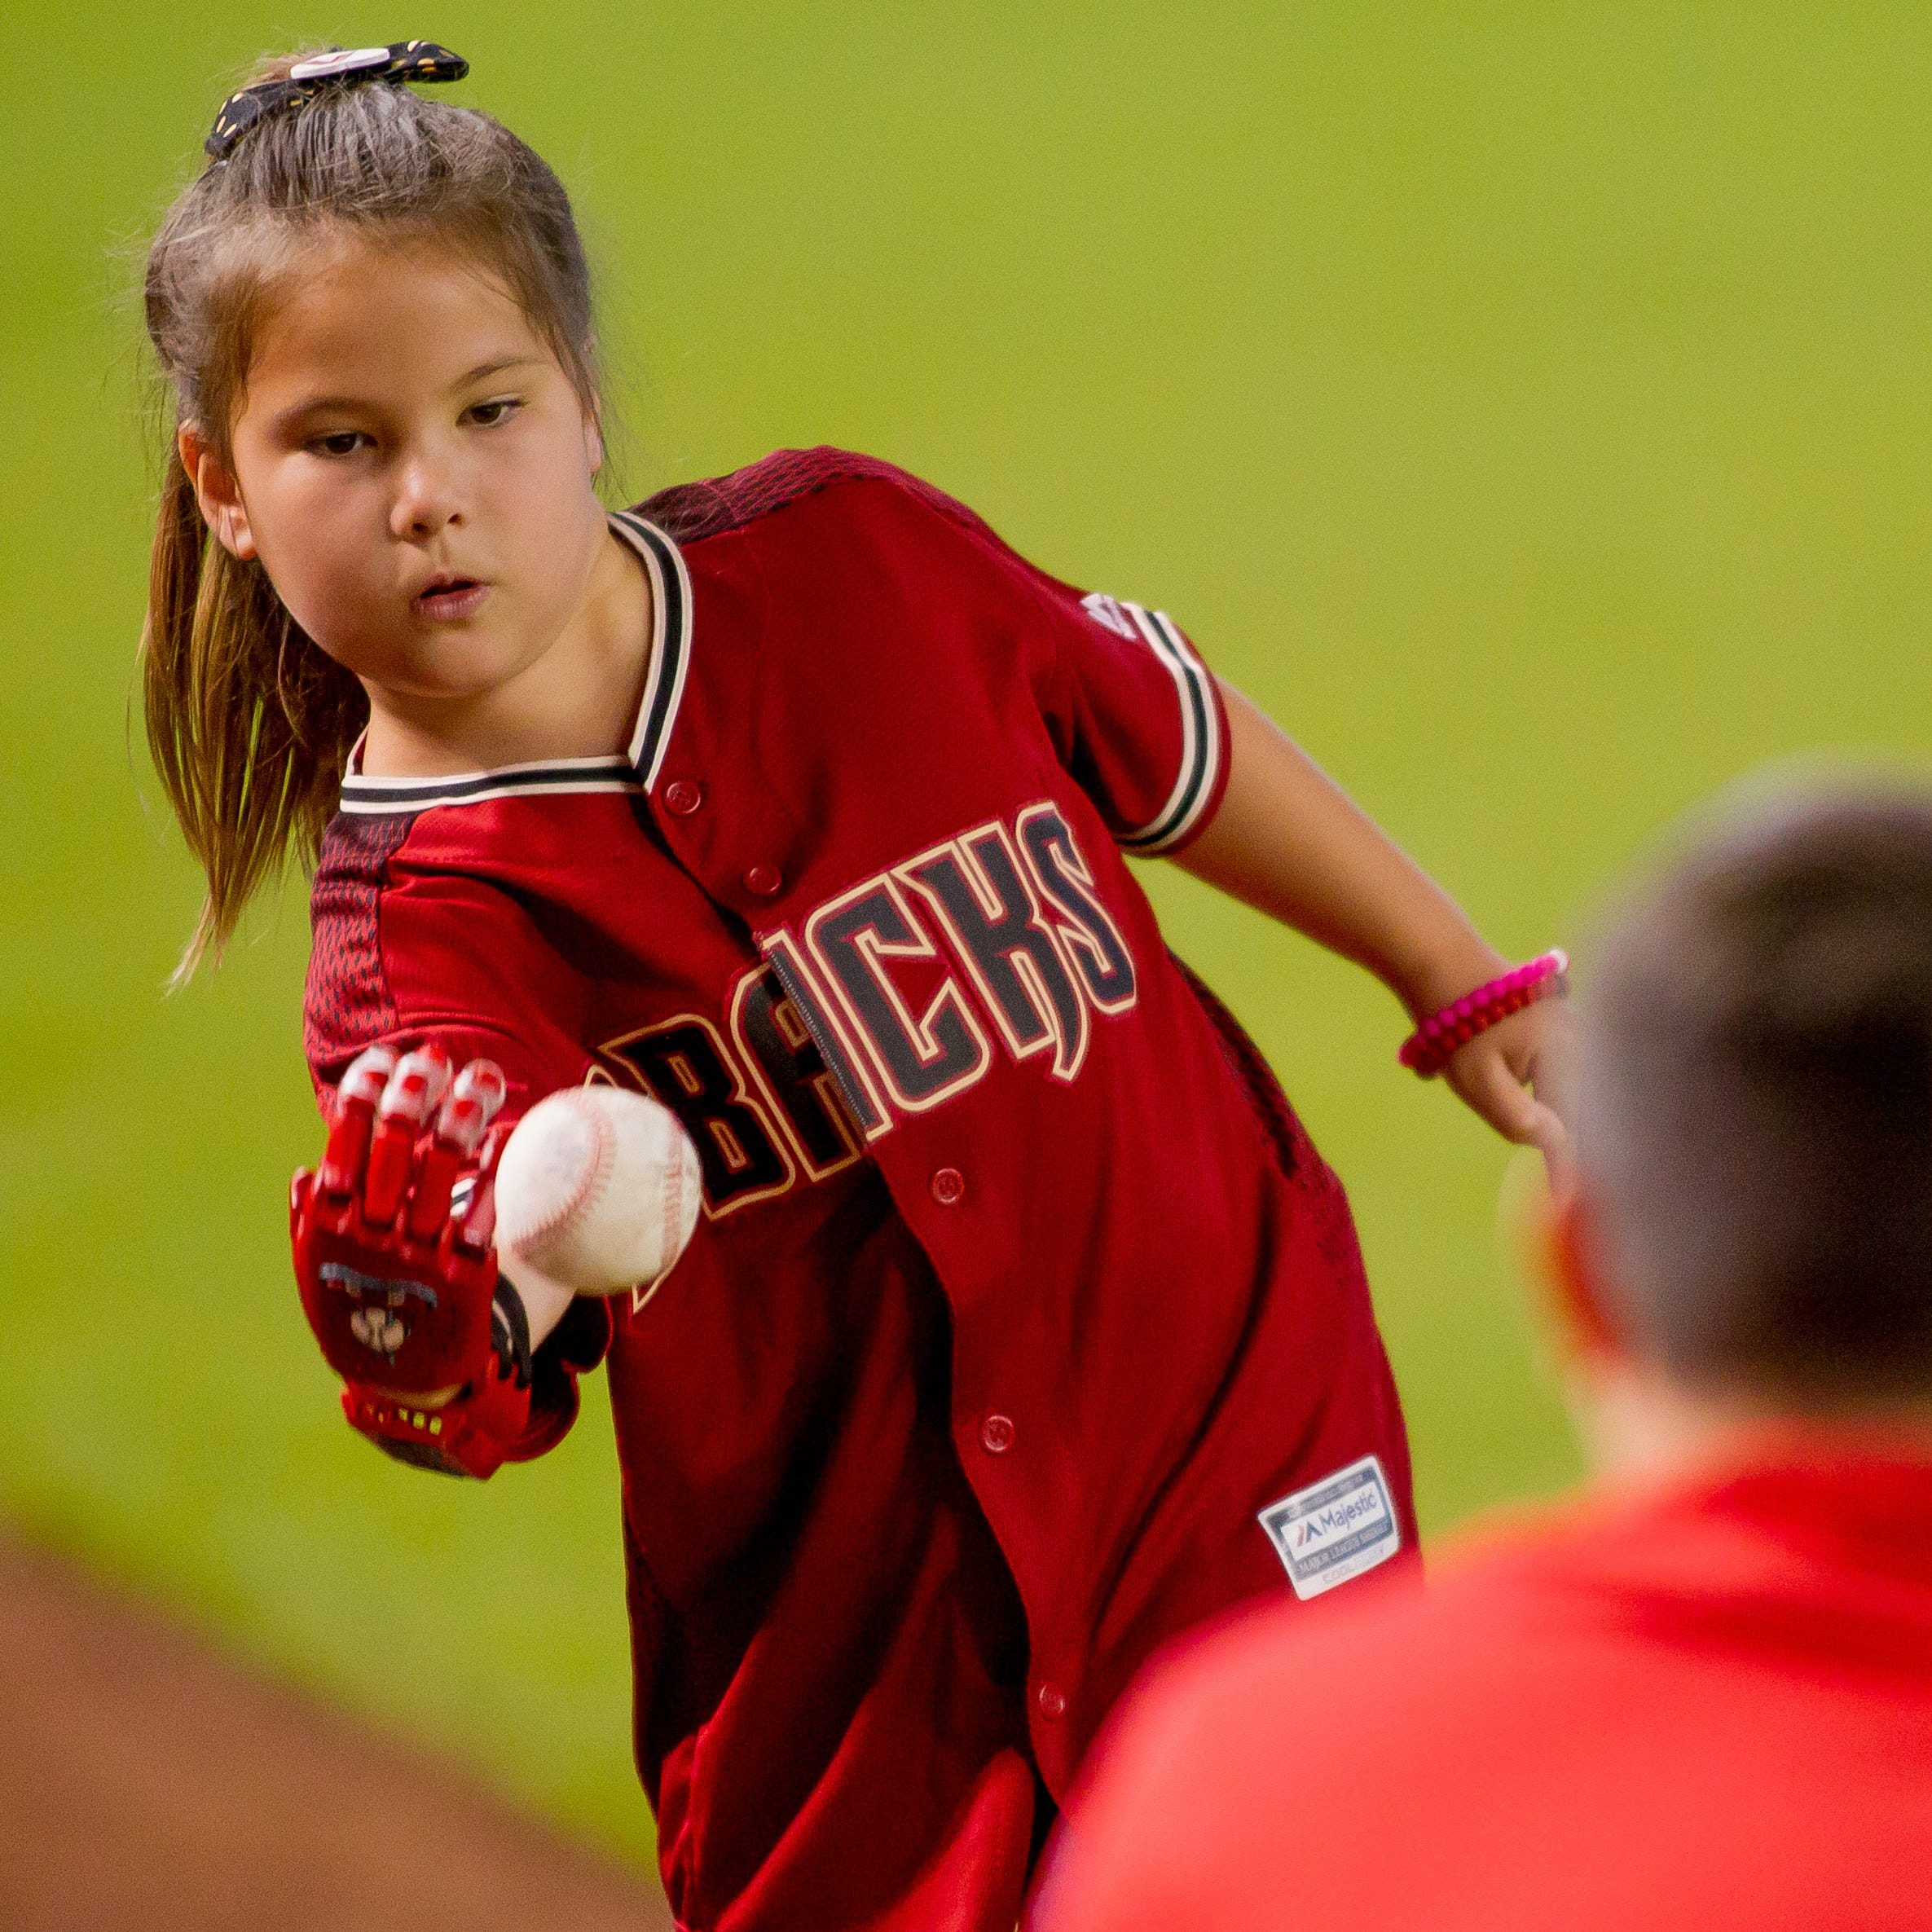 A new hand, a new ballpark: Girl throws first pitch at D-Backs game with 3D-printed hand